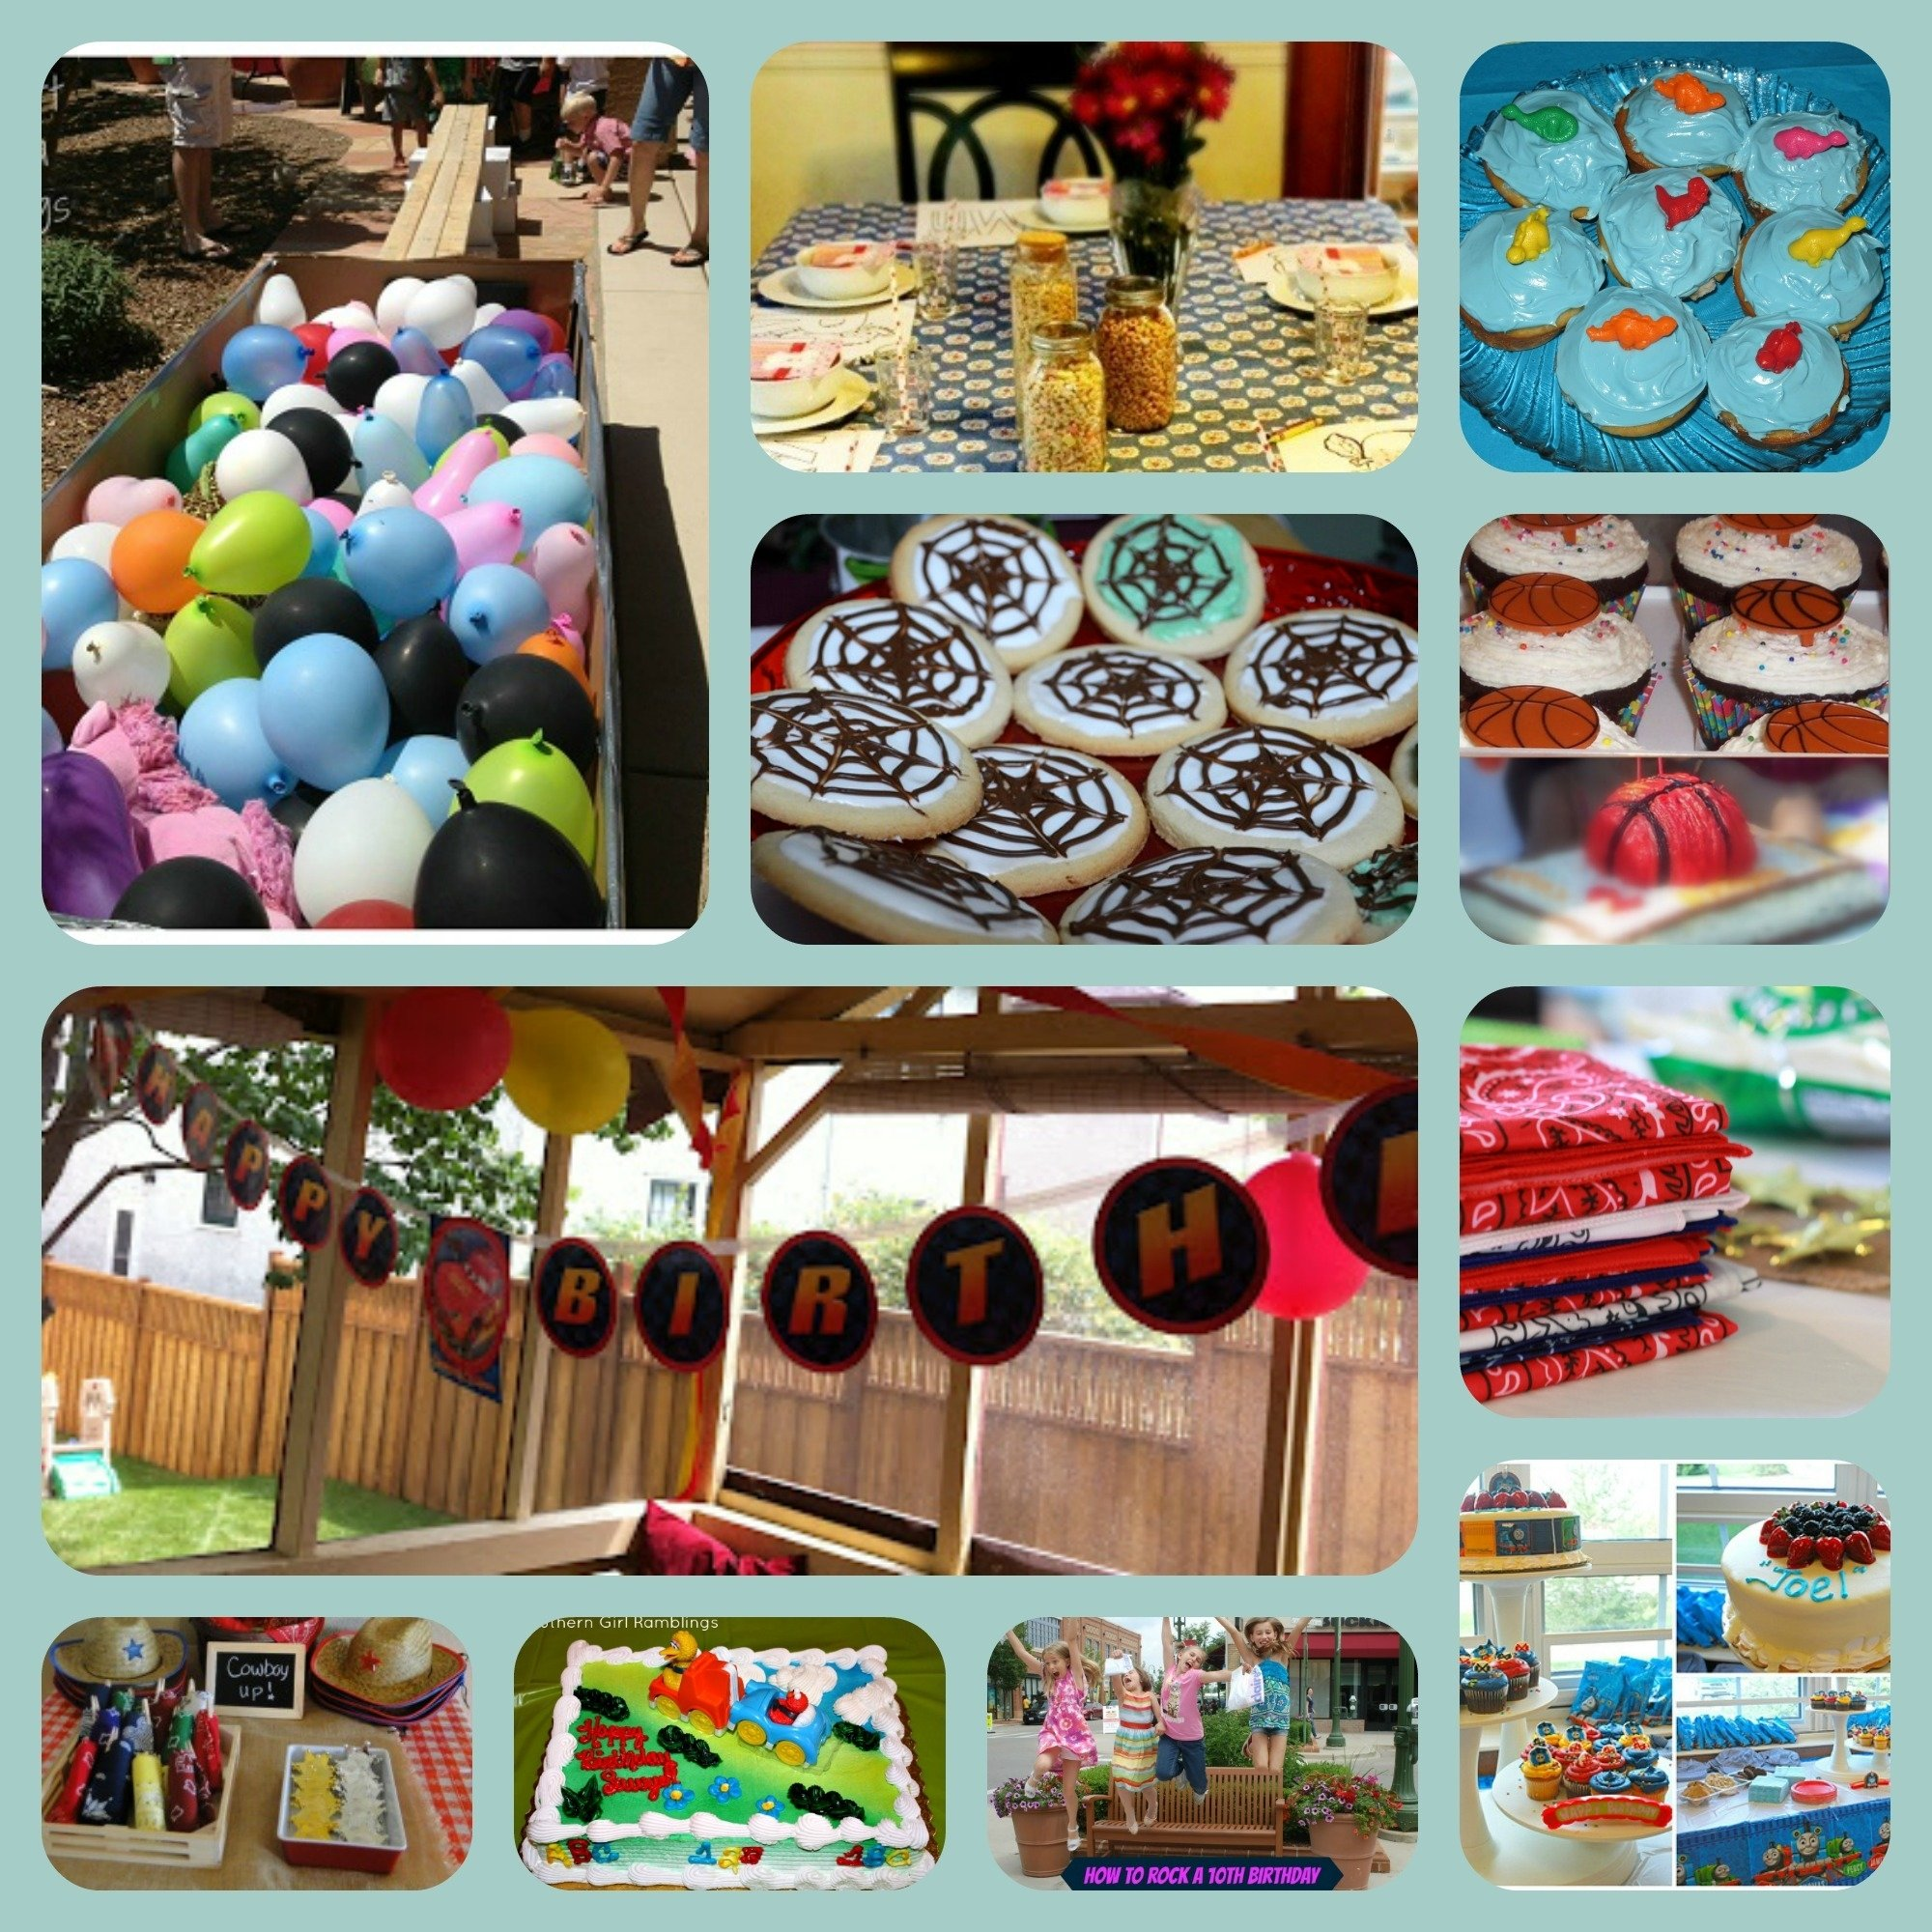 10 Famous 10 Yr Old Birthday Party Ideas 40 birthday party themes ideas tutorials and printables 6